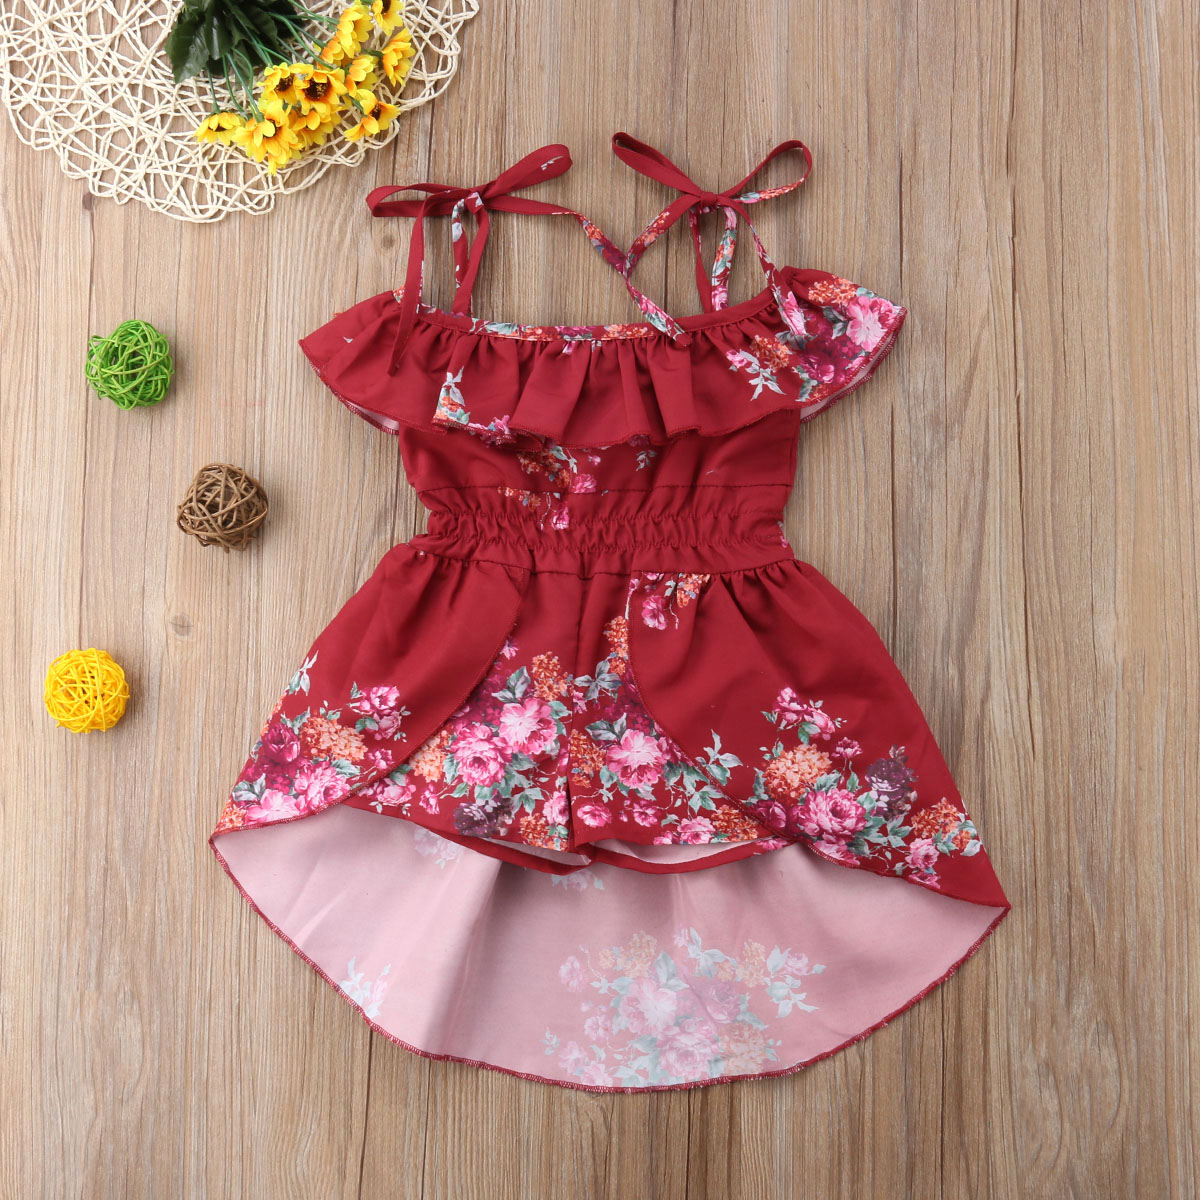 2706dfd341e 2018 Kids Baby Girl Off shoulder Floral Romper Jumpsuits Summer Strap Red Trousers  Outfits Dress-in Dresses from Mother   Kids on Aliexpress.com